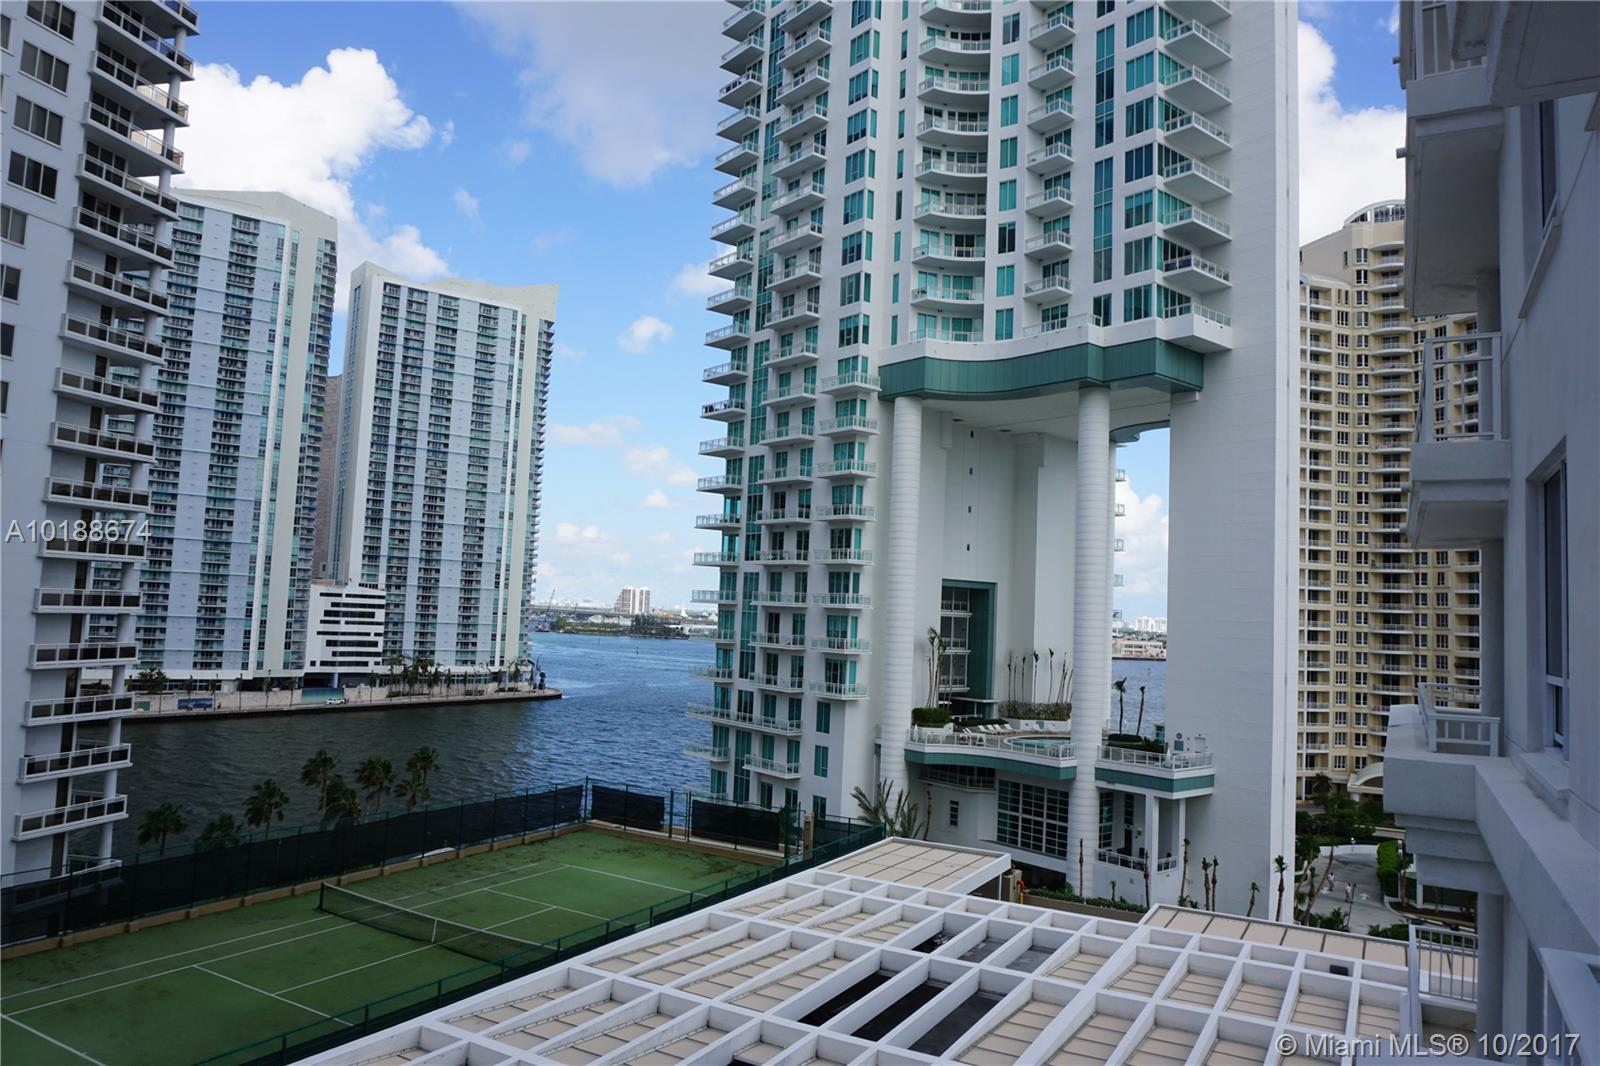 801 Brickell Key Blvd # 1010, Miami , FL 33131